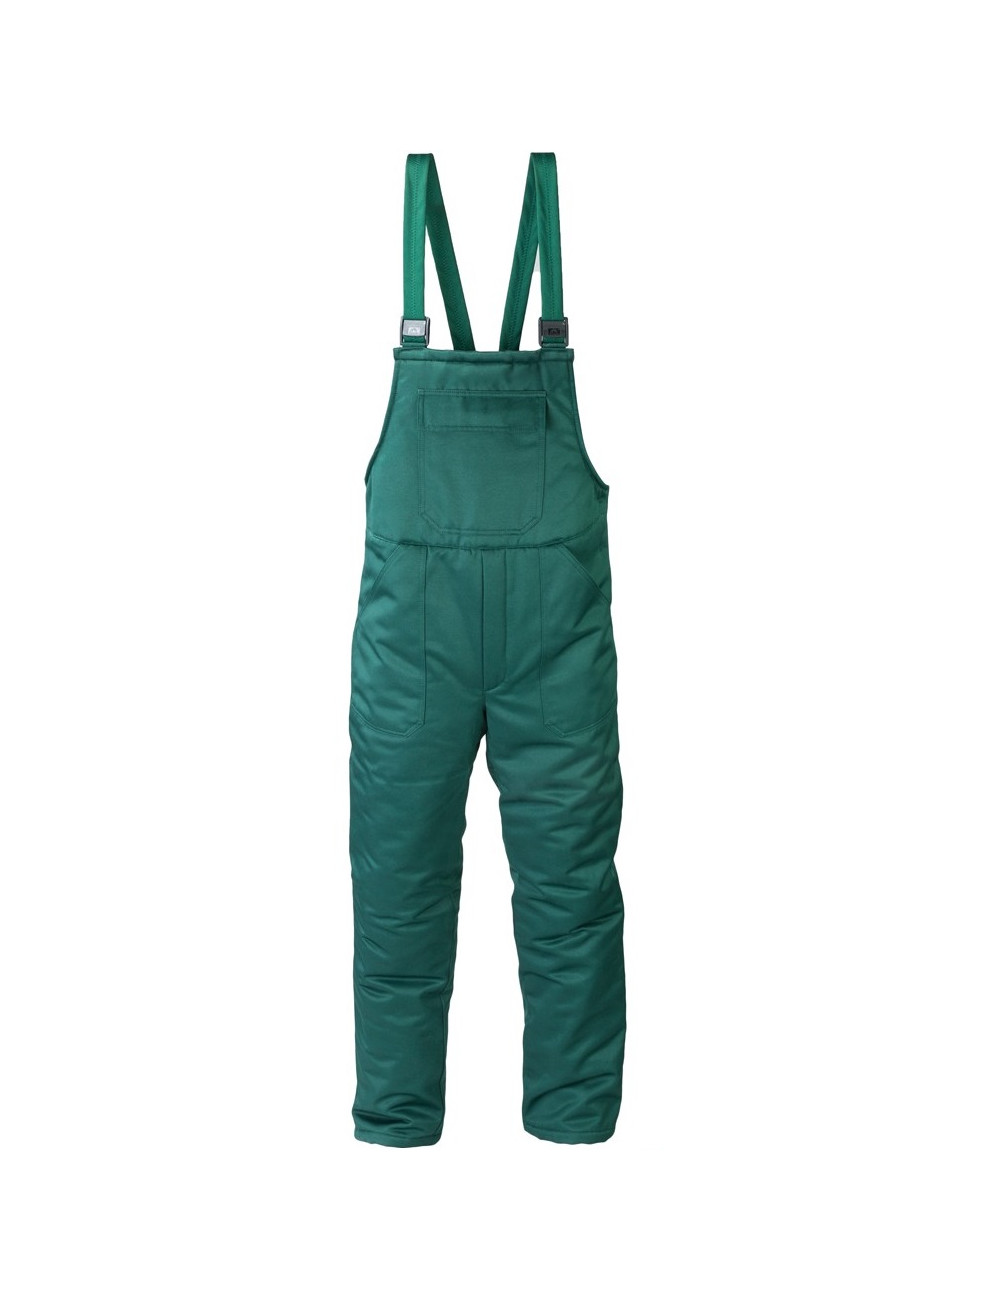 Freezer and cold store trousers